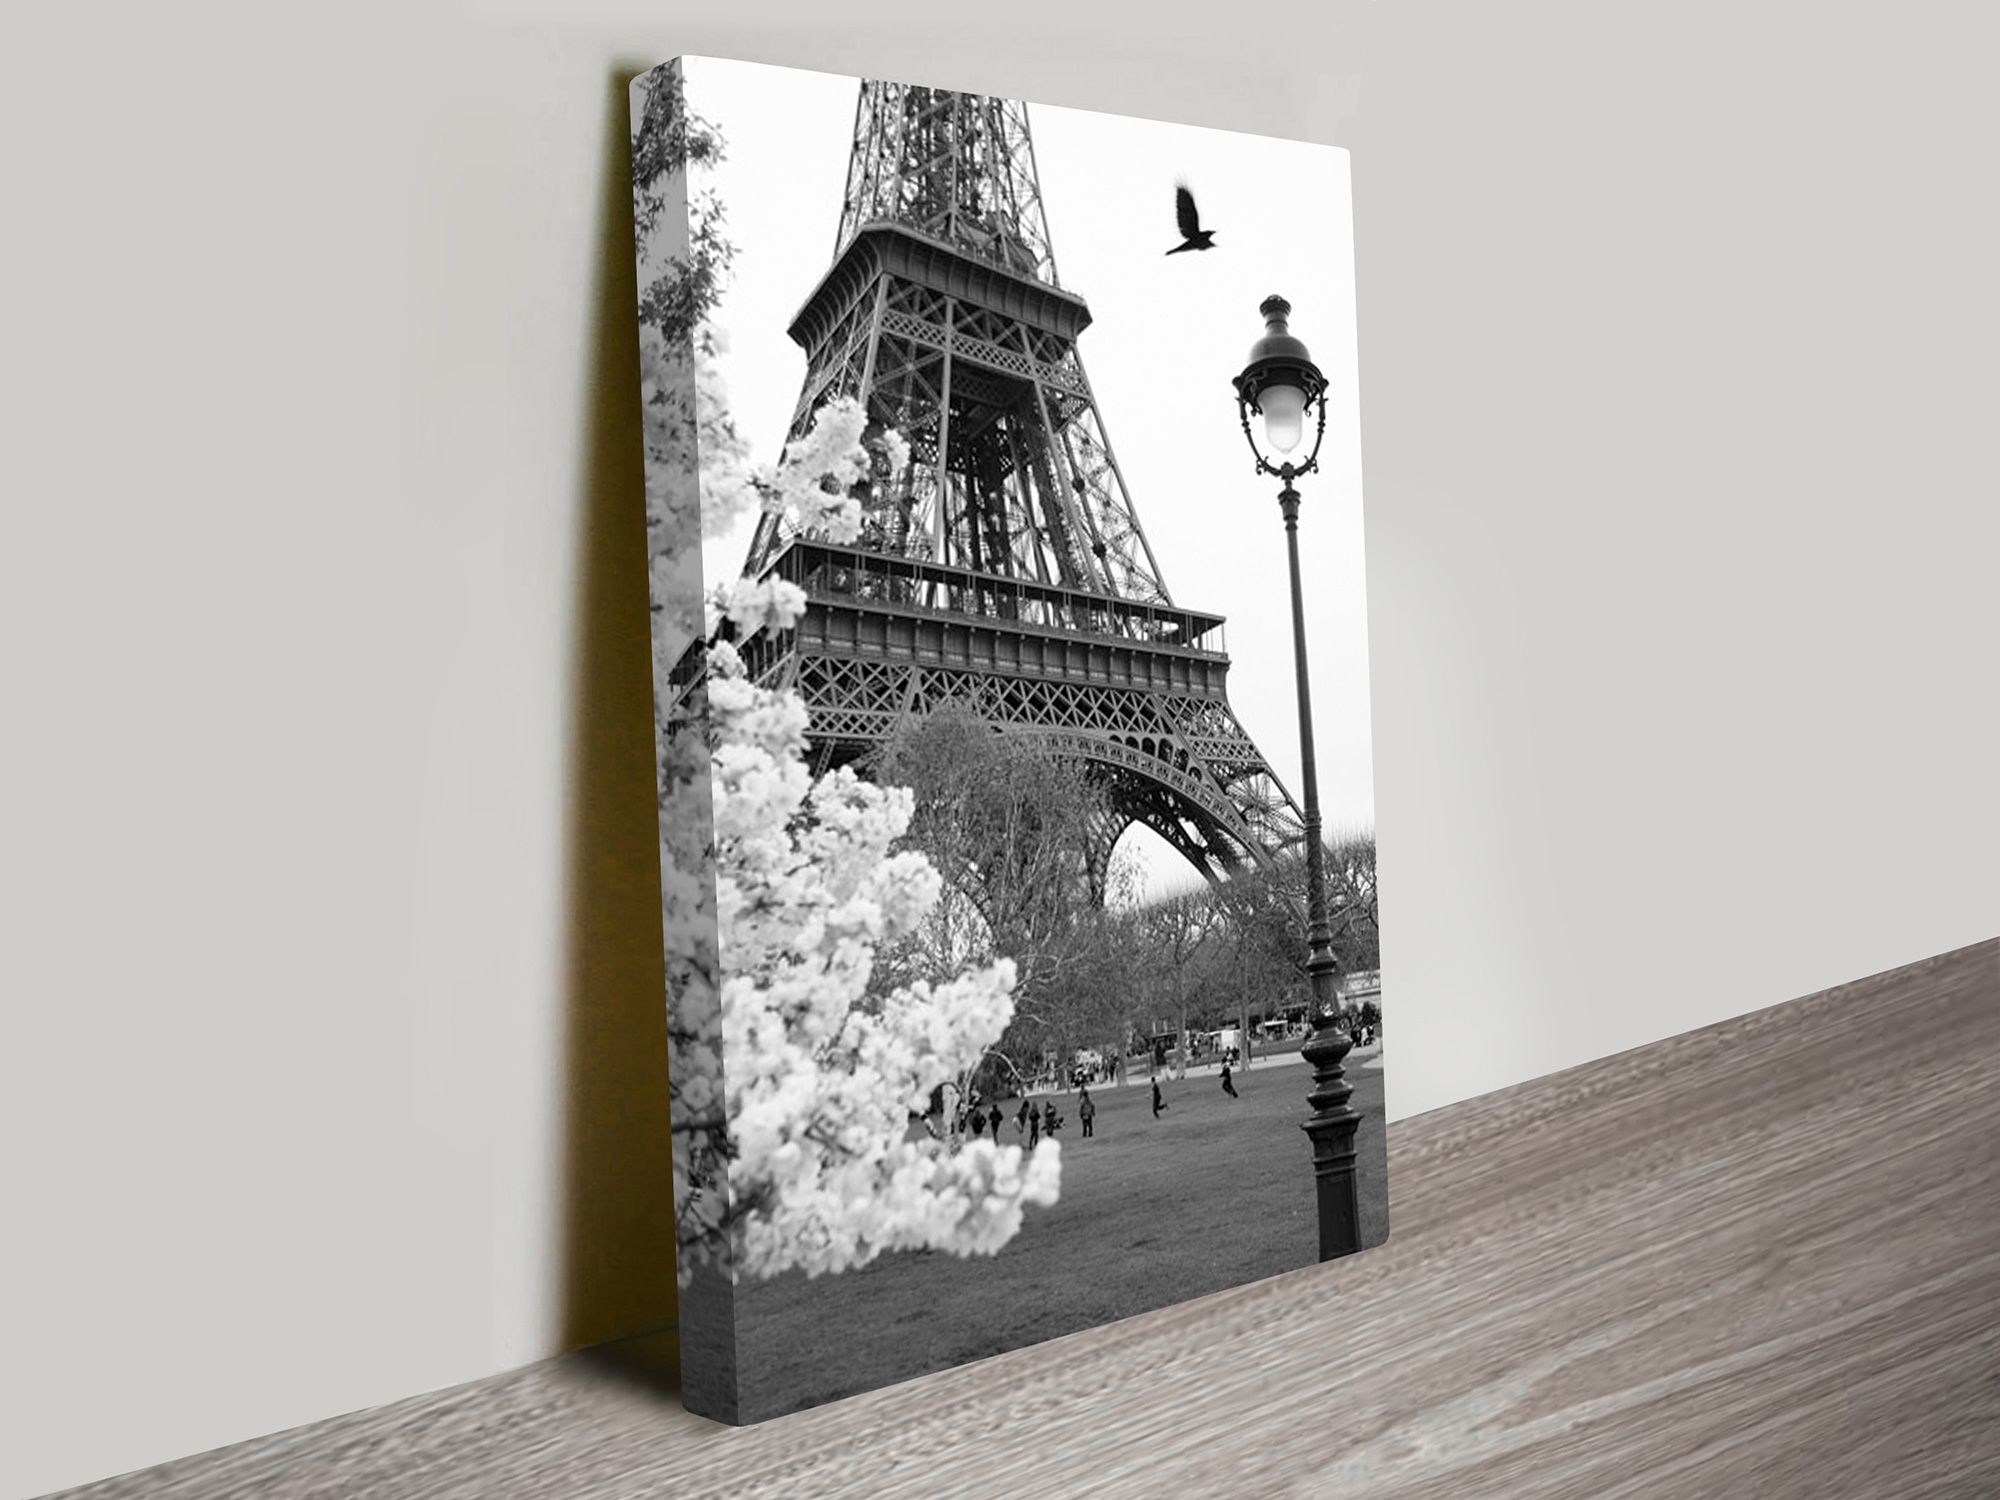 Eiffel Tower Portrait Canvas Artwork Regarding Favorite Canvas Wall Art In Australia (Gallery 5 of 15)